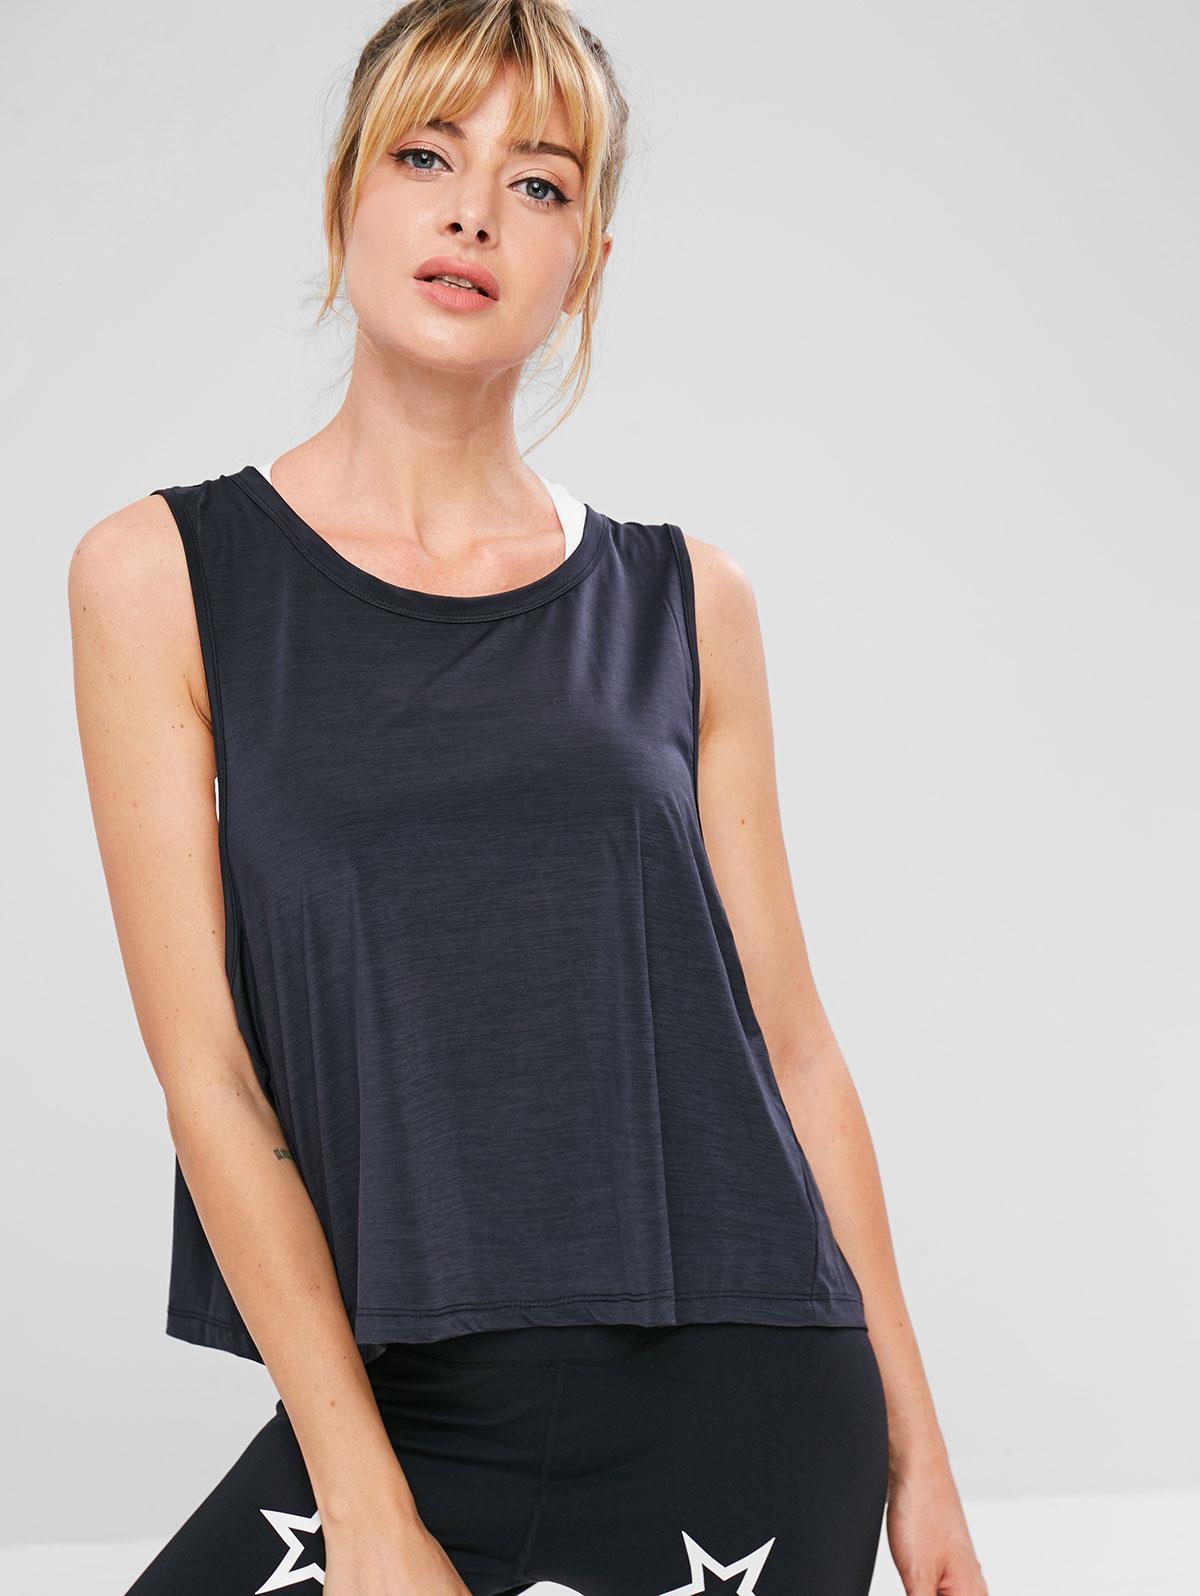 ZAFUL Running Tank Top Summer Sexy Women Back Split Exercise Tie T Shirts Sleeveless Sports Tank Top Female Athletic Tee Camis in Tank Tops from Women 39 s Clothing